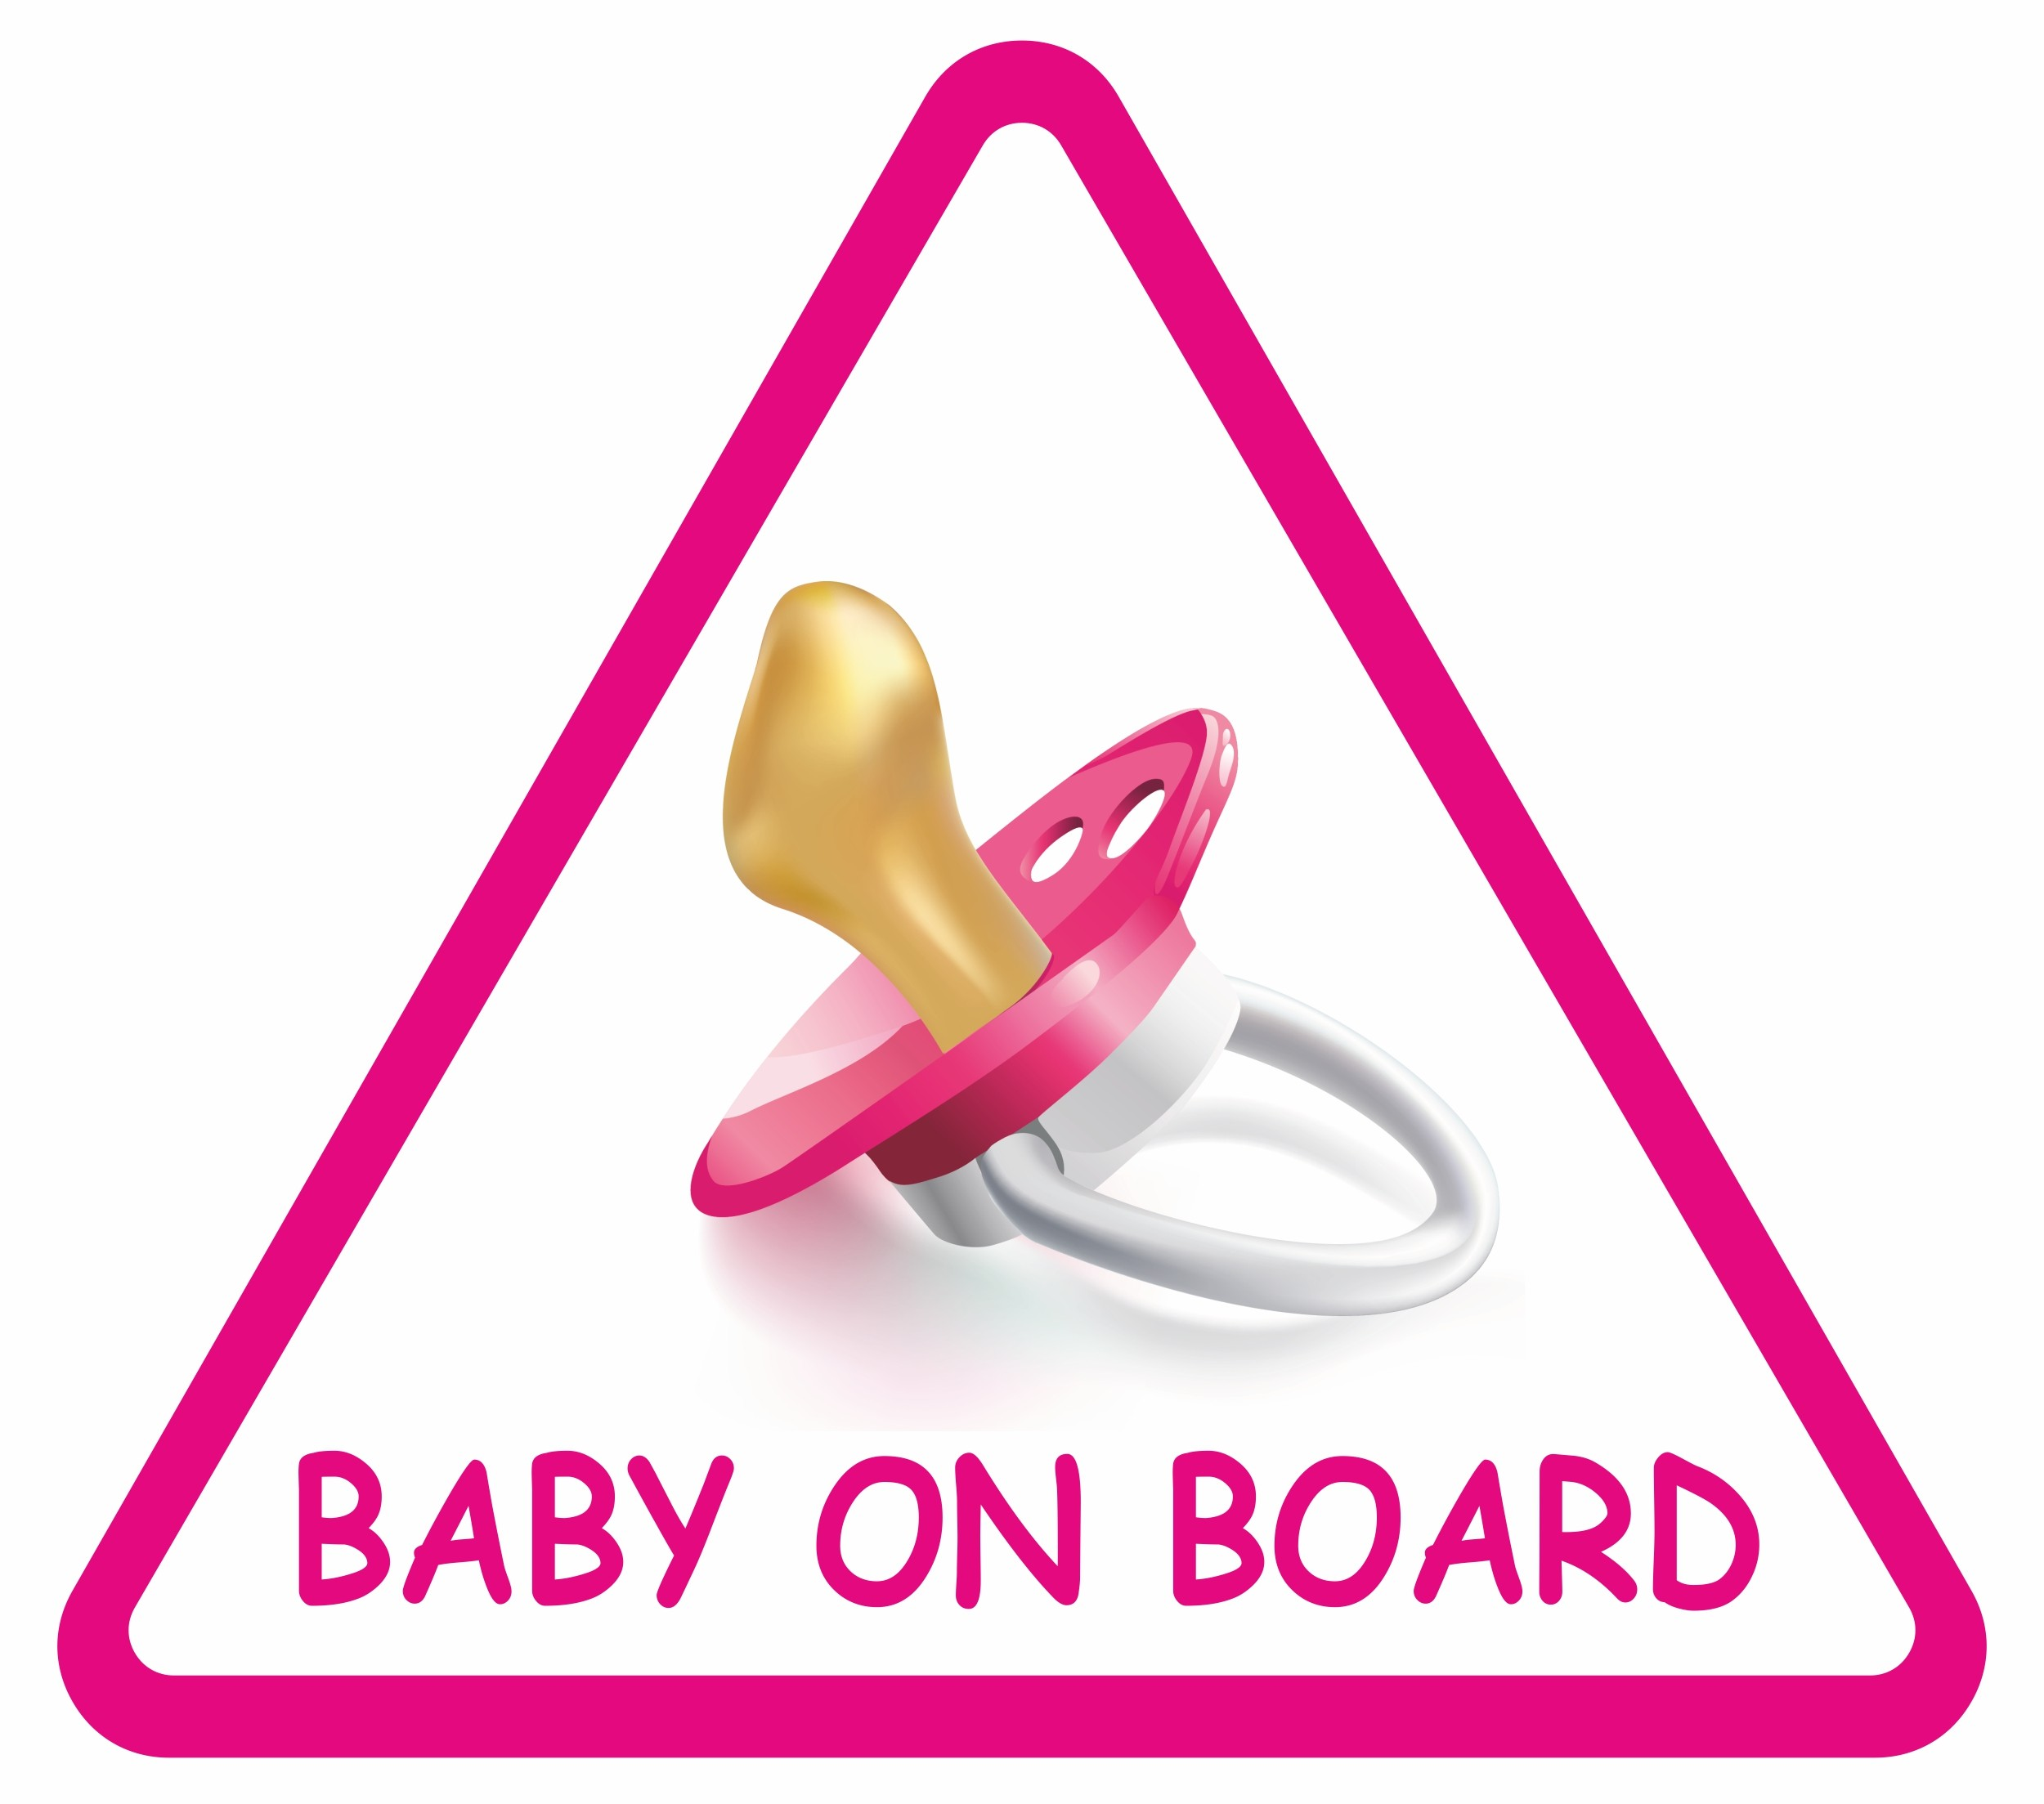 Autocollant Baby an Bord triangulaire 120 x 135 mm – Bild 1